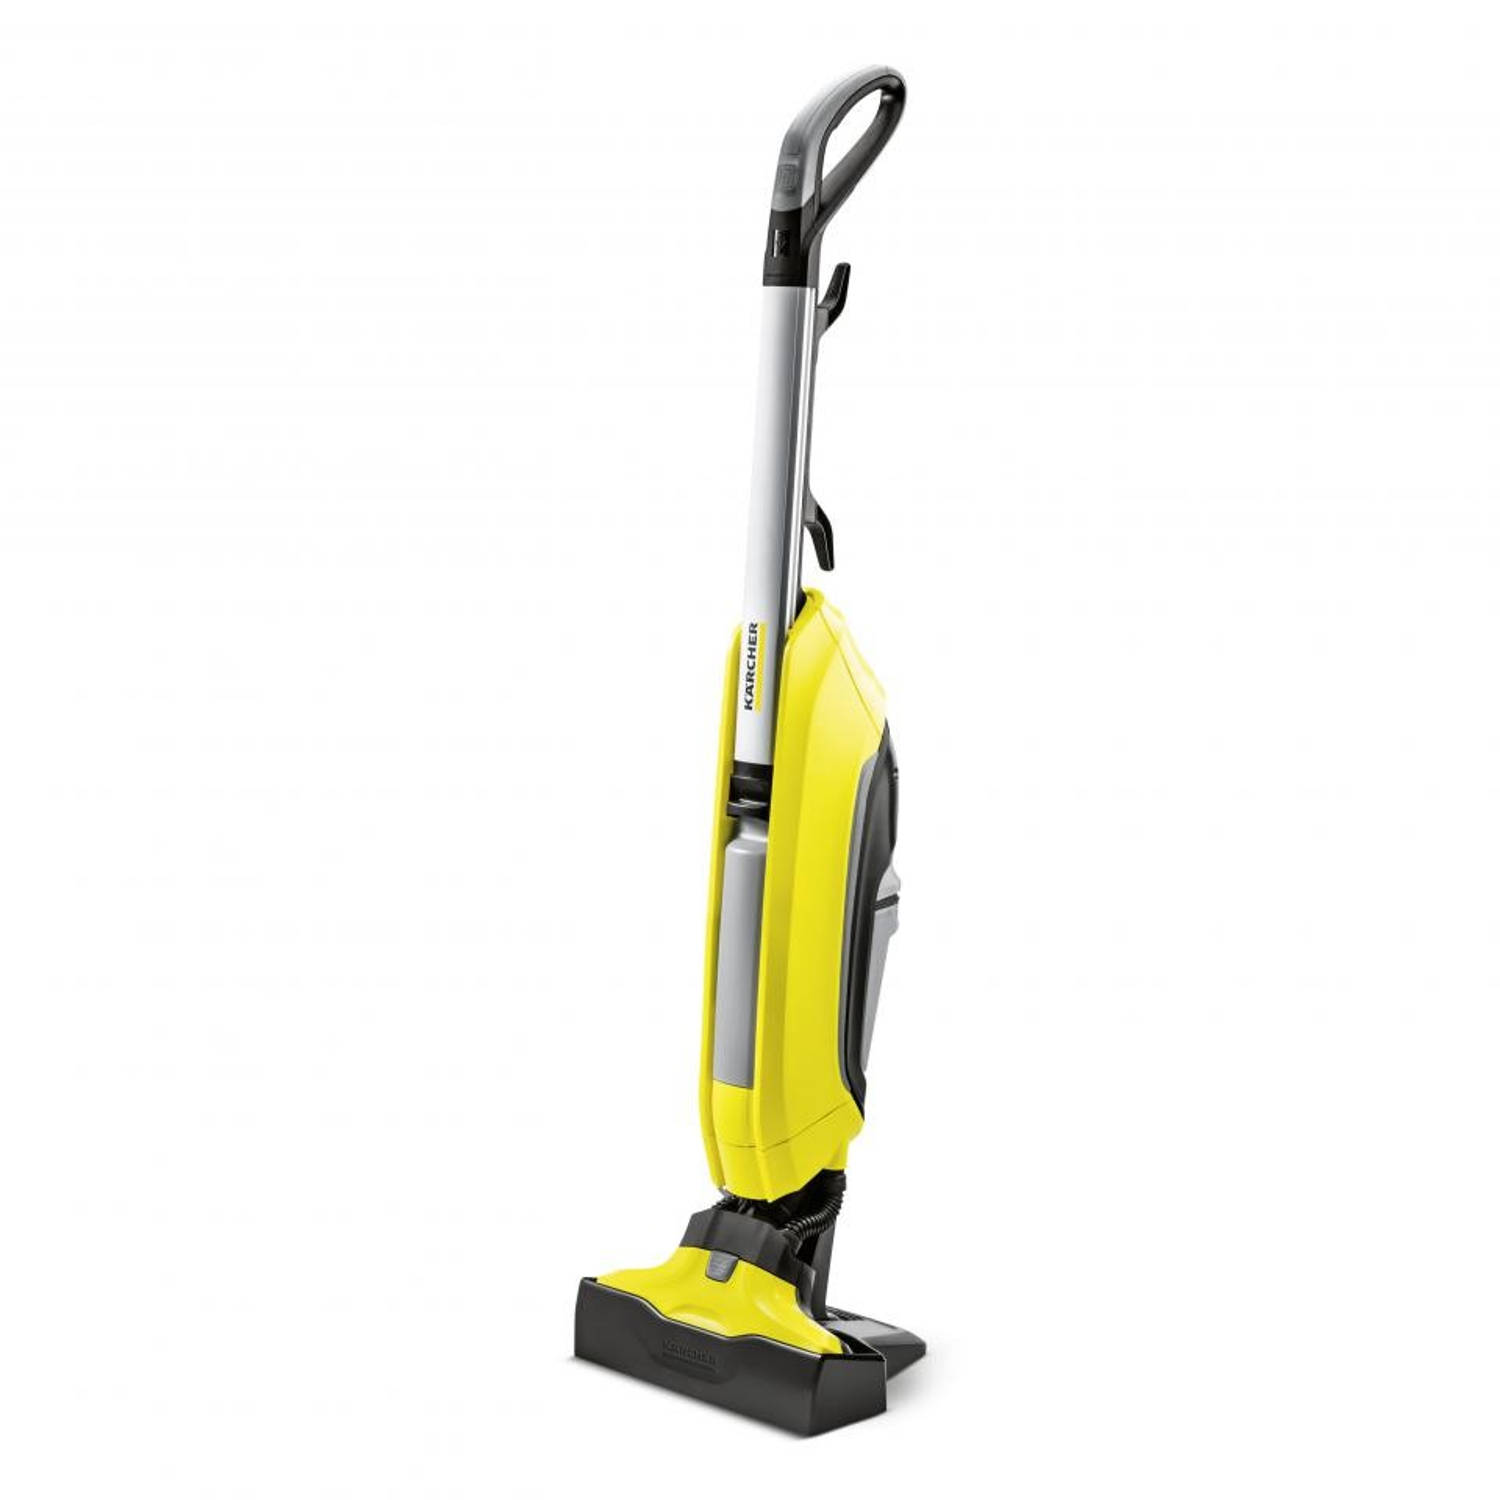 Karcher Floor Cleaner FC5 Premium geel